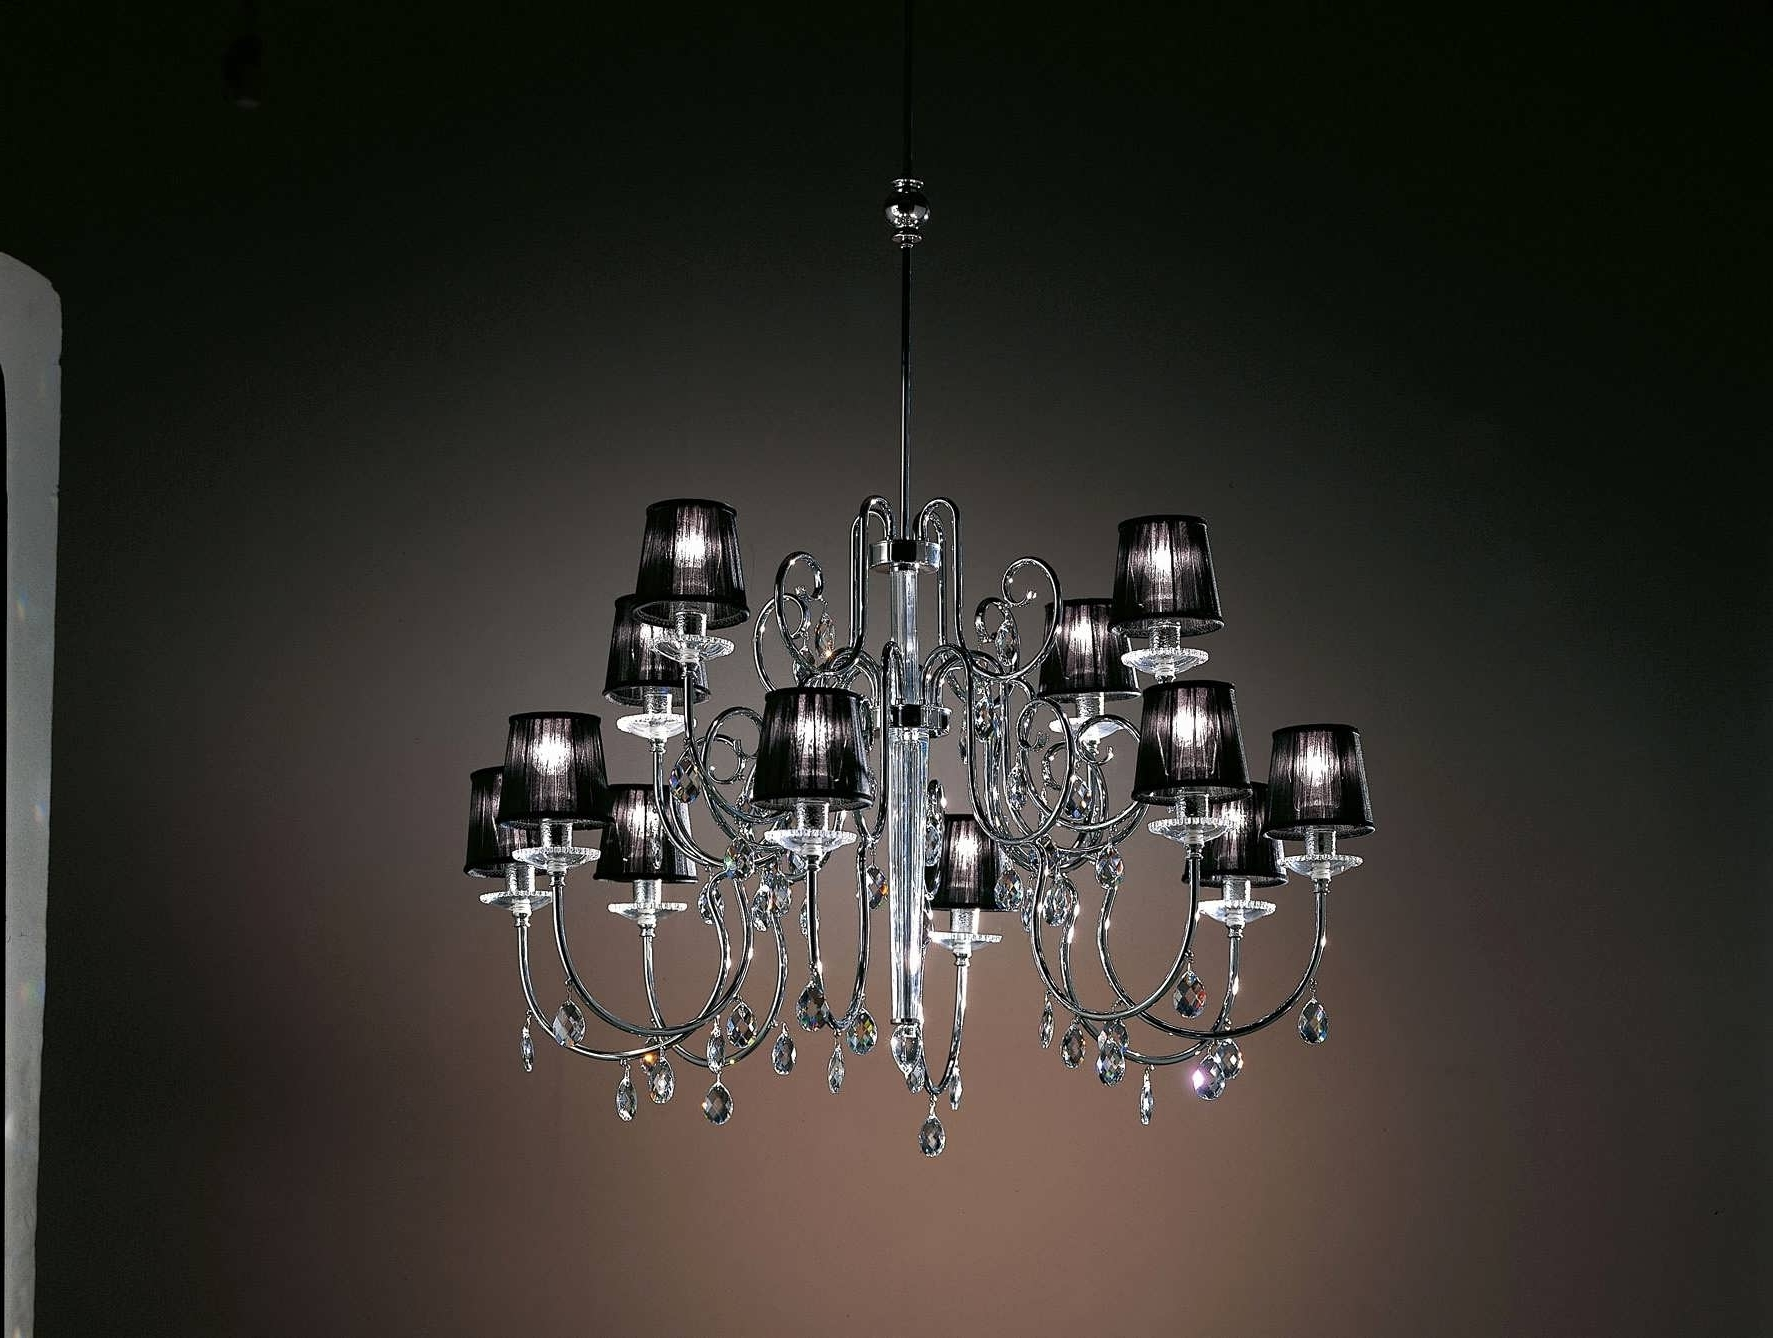 Large Chandeliers Pertaining To Well Known Light : Modern Chandelier Lighting Small Black Keywordrelevance (View 13 of 20)